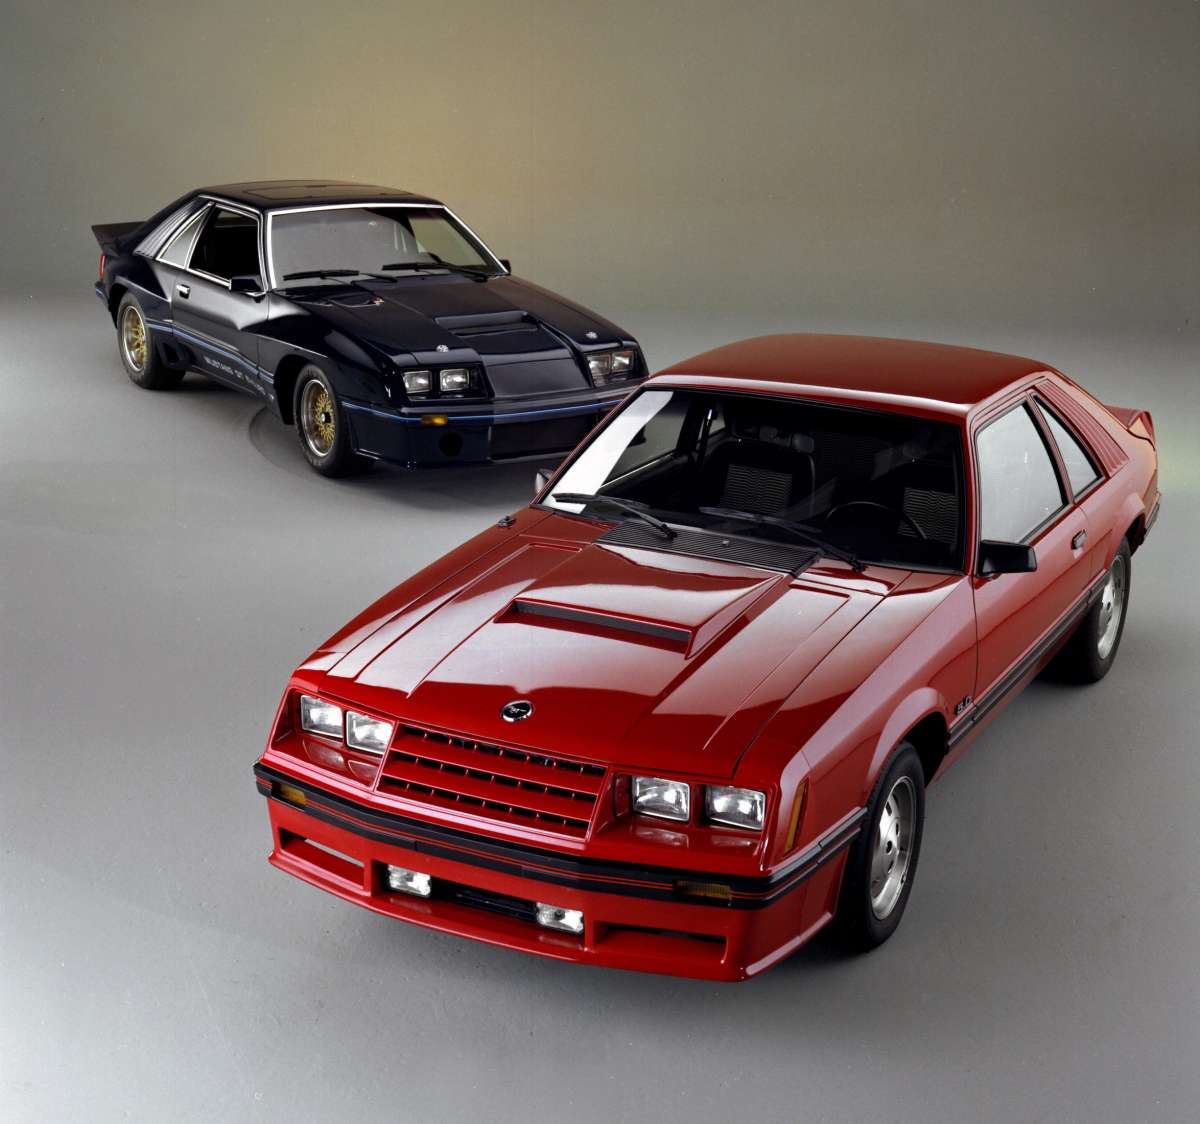 car show classic 1982 ford mustang gt welcome back. Black Bedroom Furniture Sets. Home Design Ideas